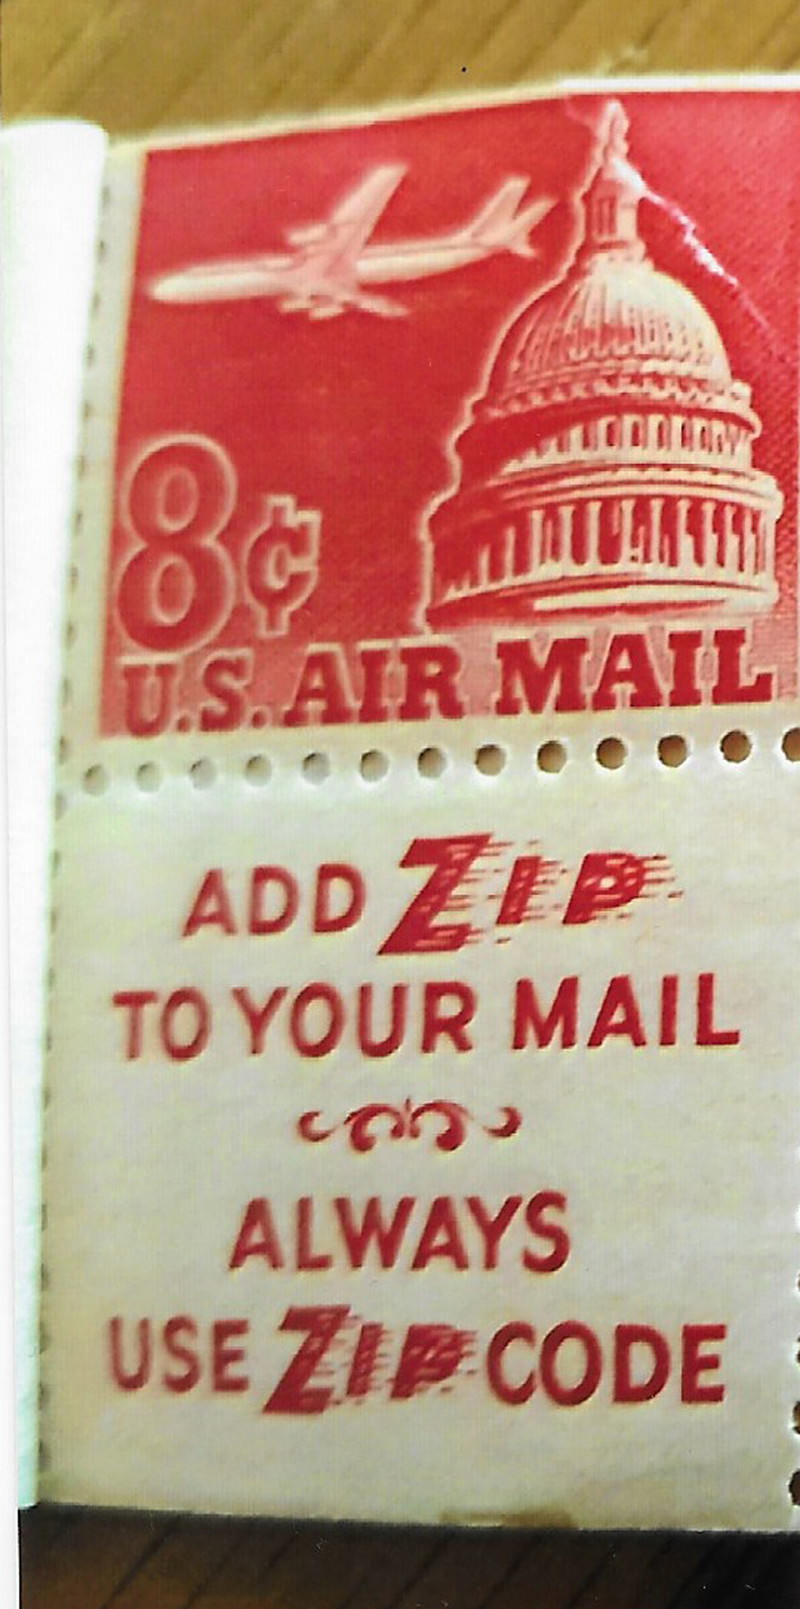 1962 US Airmail Stamp Featured A Plane And The Capitol Building